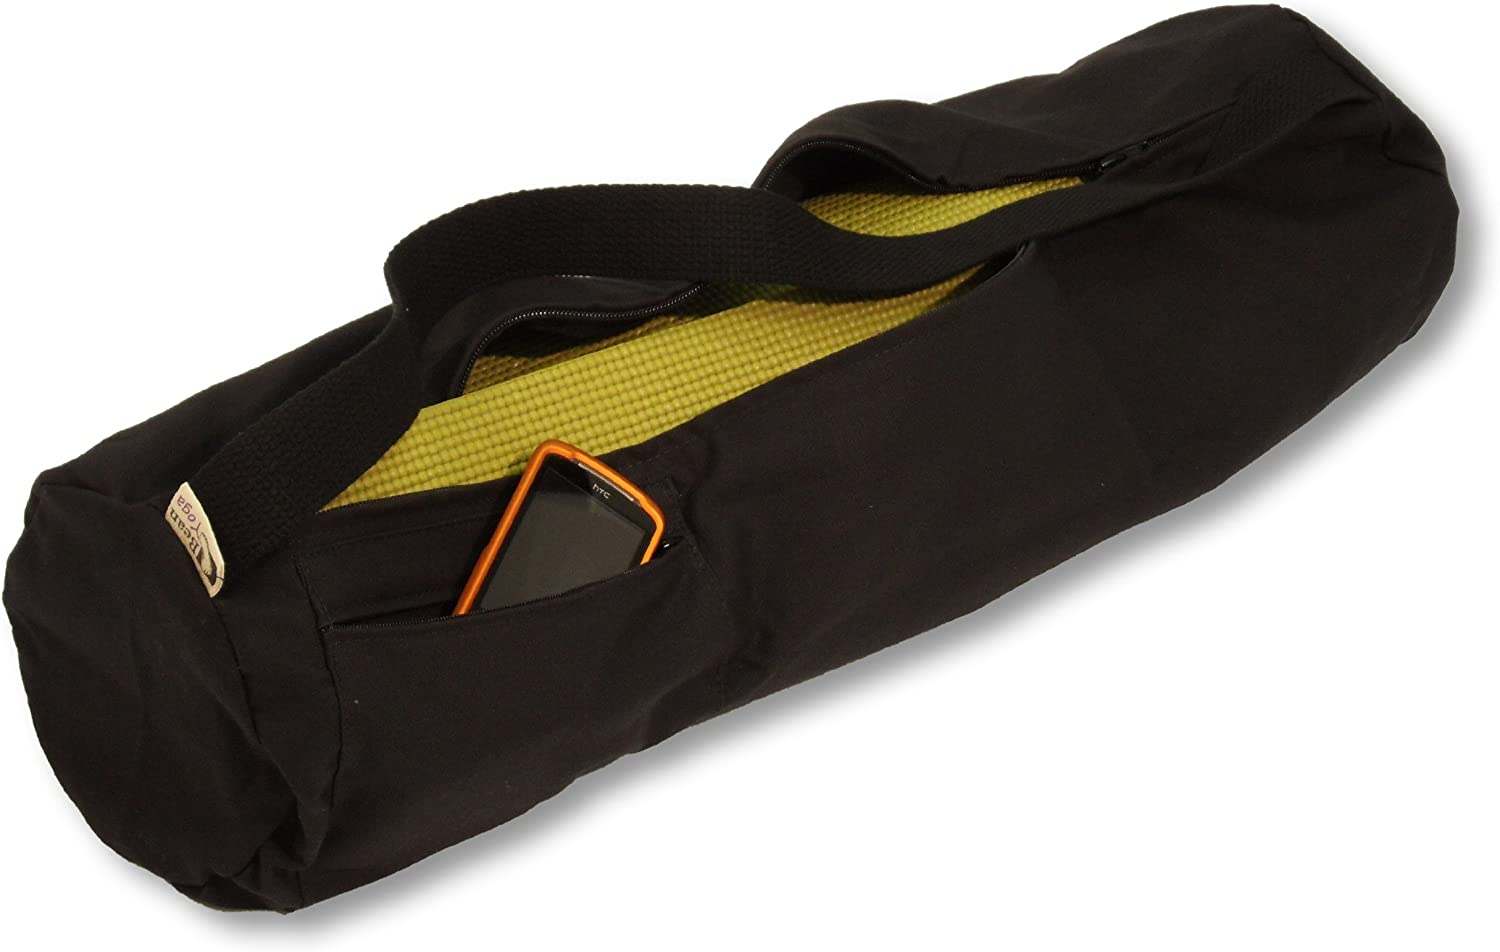 Organic Cotton or Hemp Choose Large for Standard Mats or Extra Large for Oversize or More Room for Accessories 2 Sizes Bean Products Yoga Mat Bags from A Multitude of Colors in Cotton